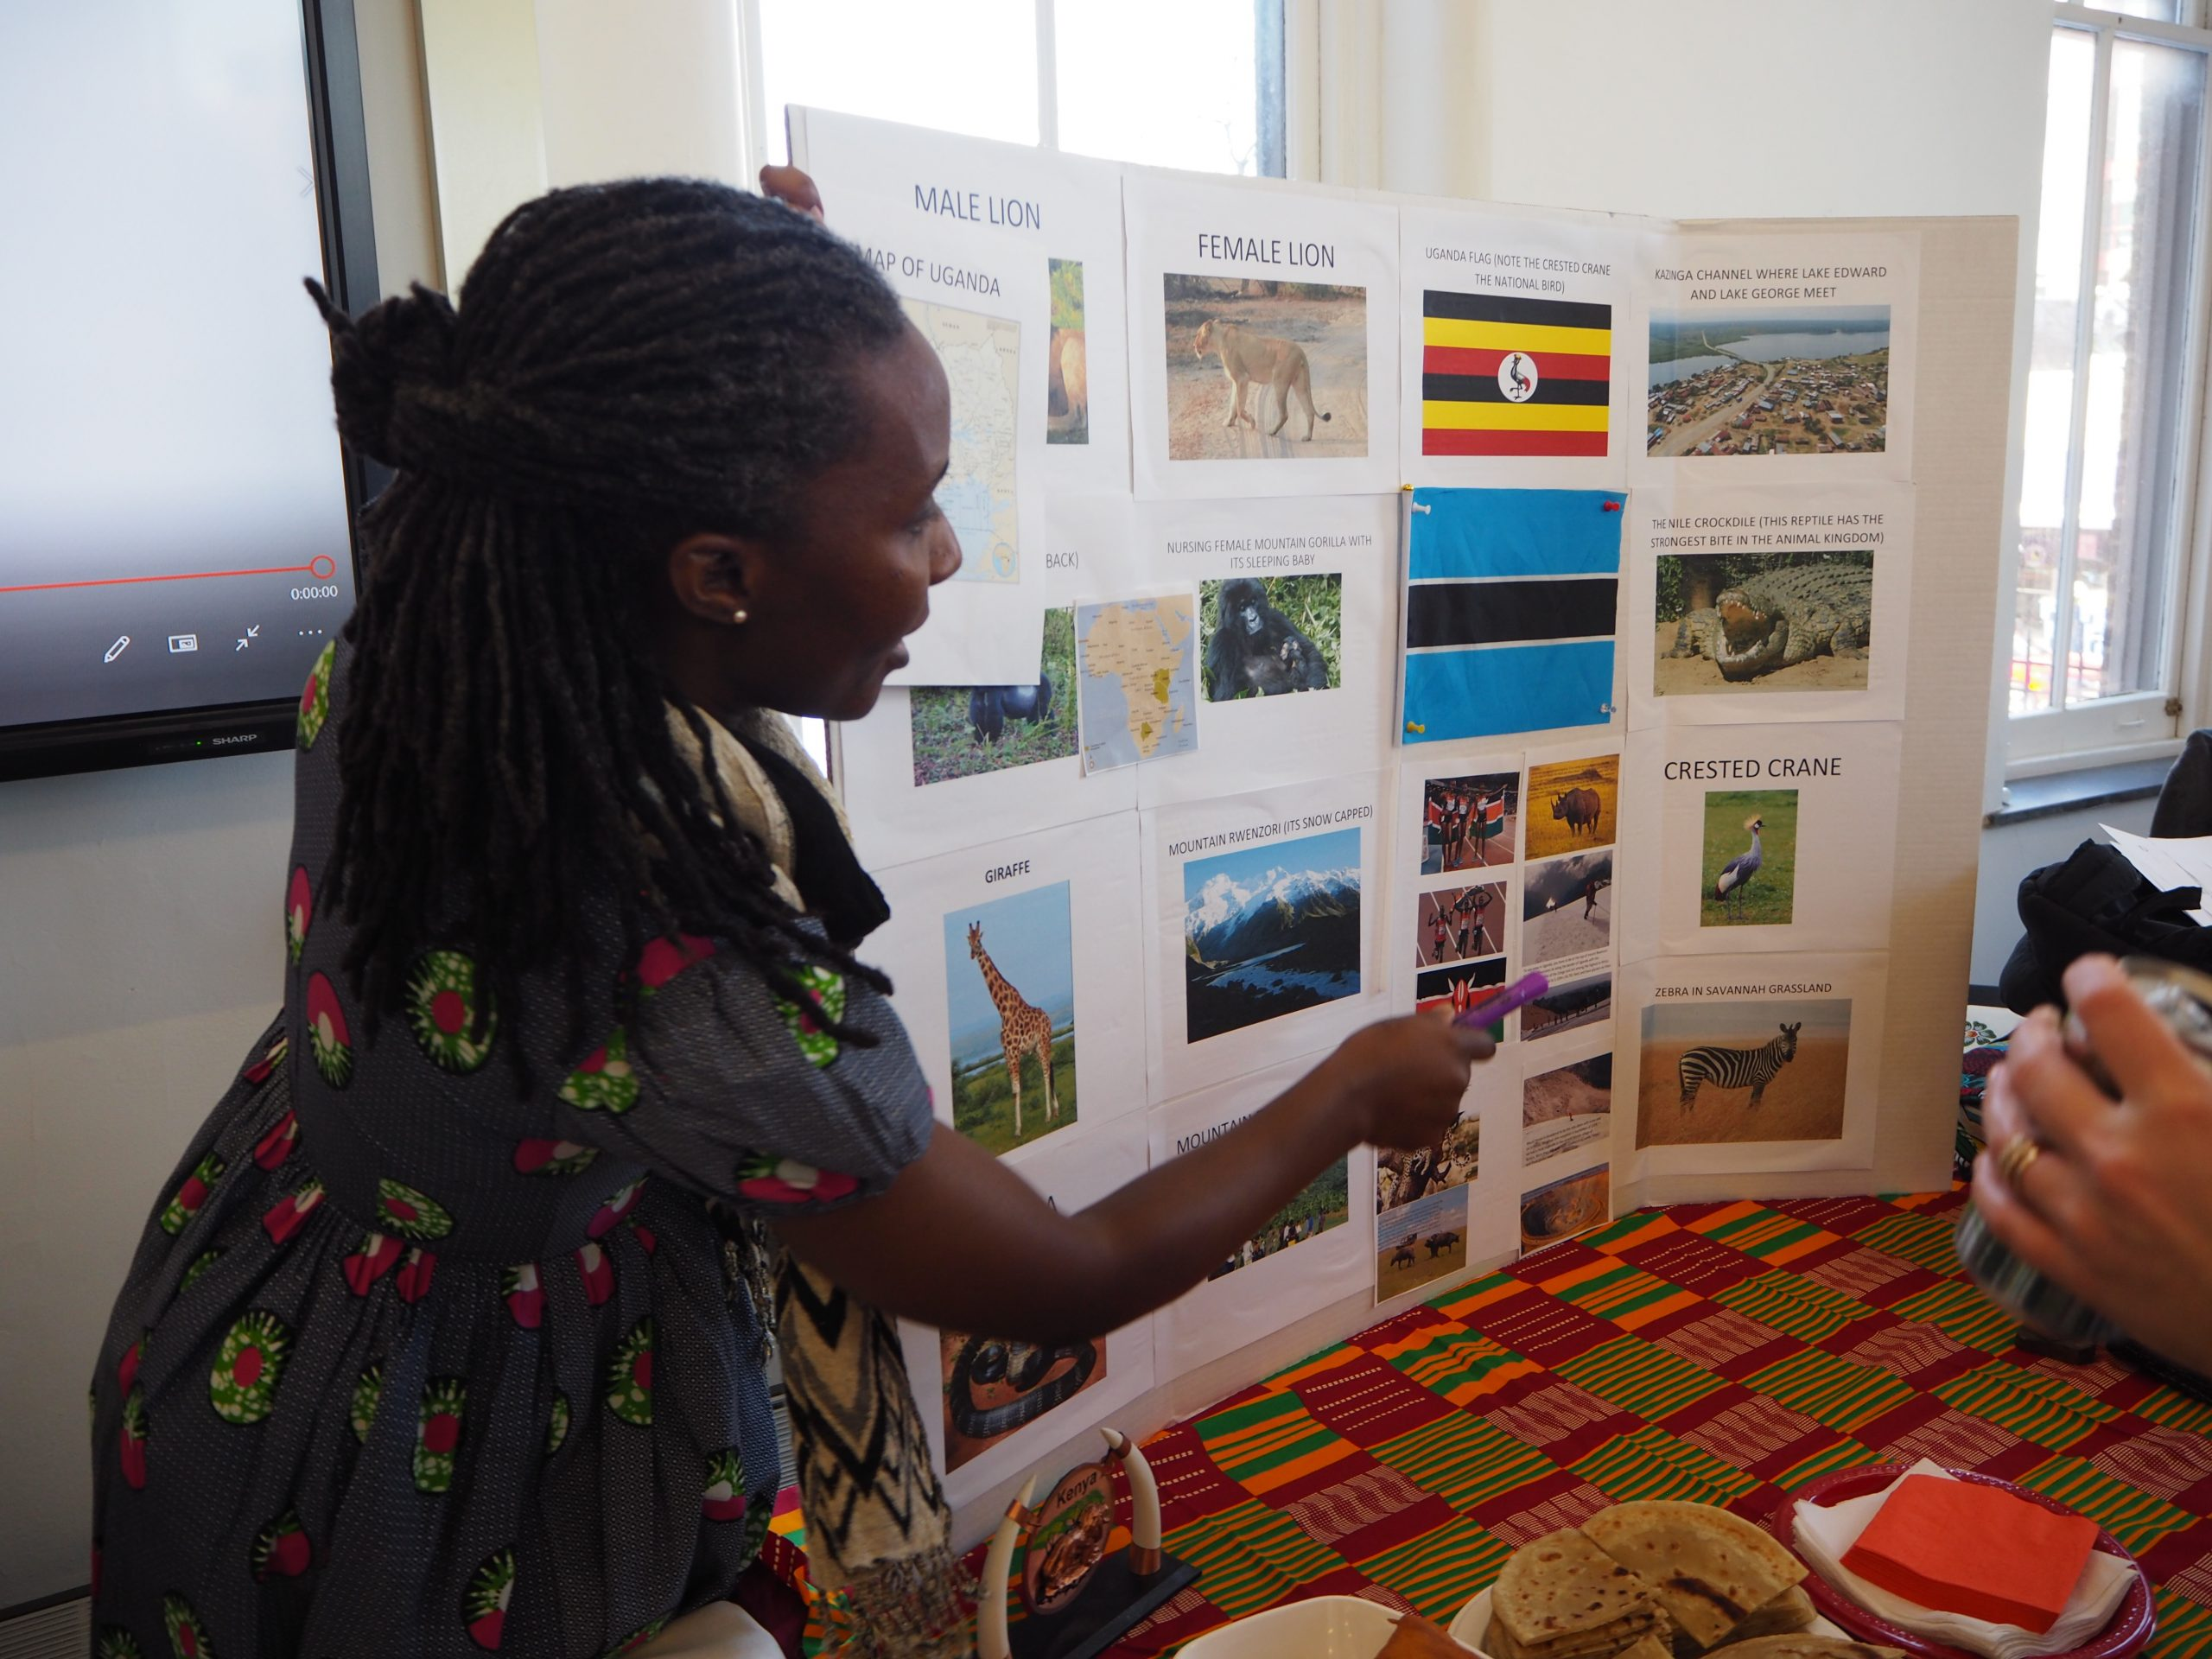 a student from uganda shows off her display